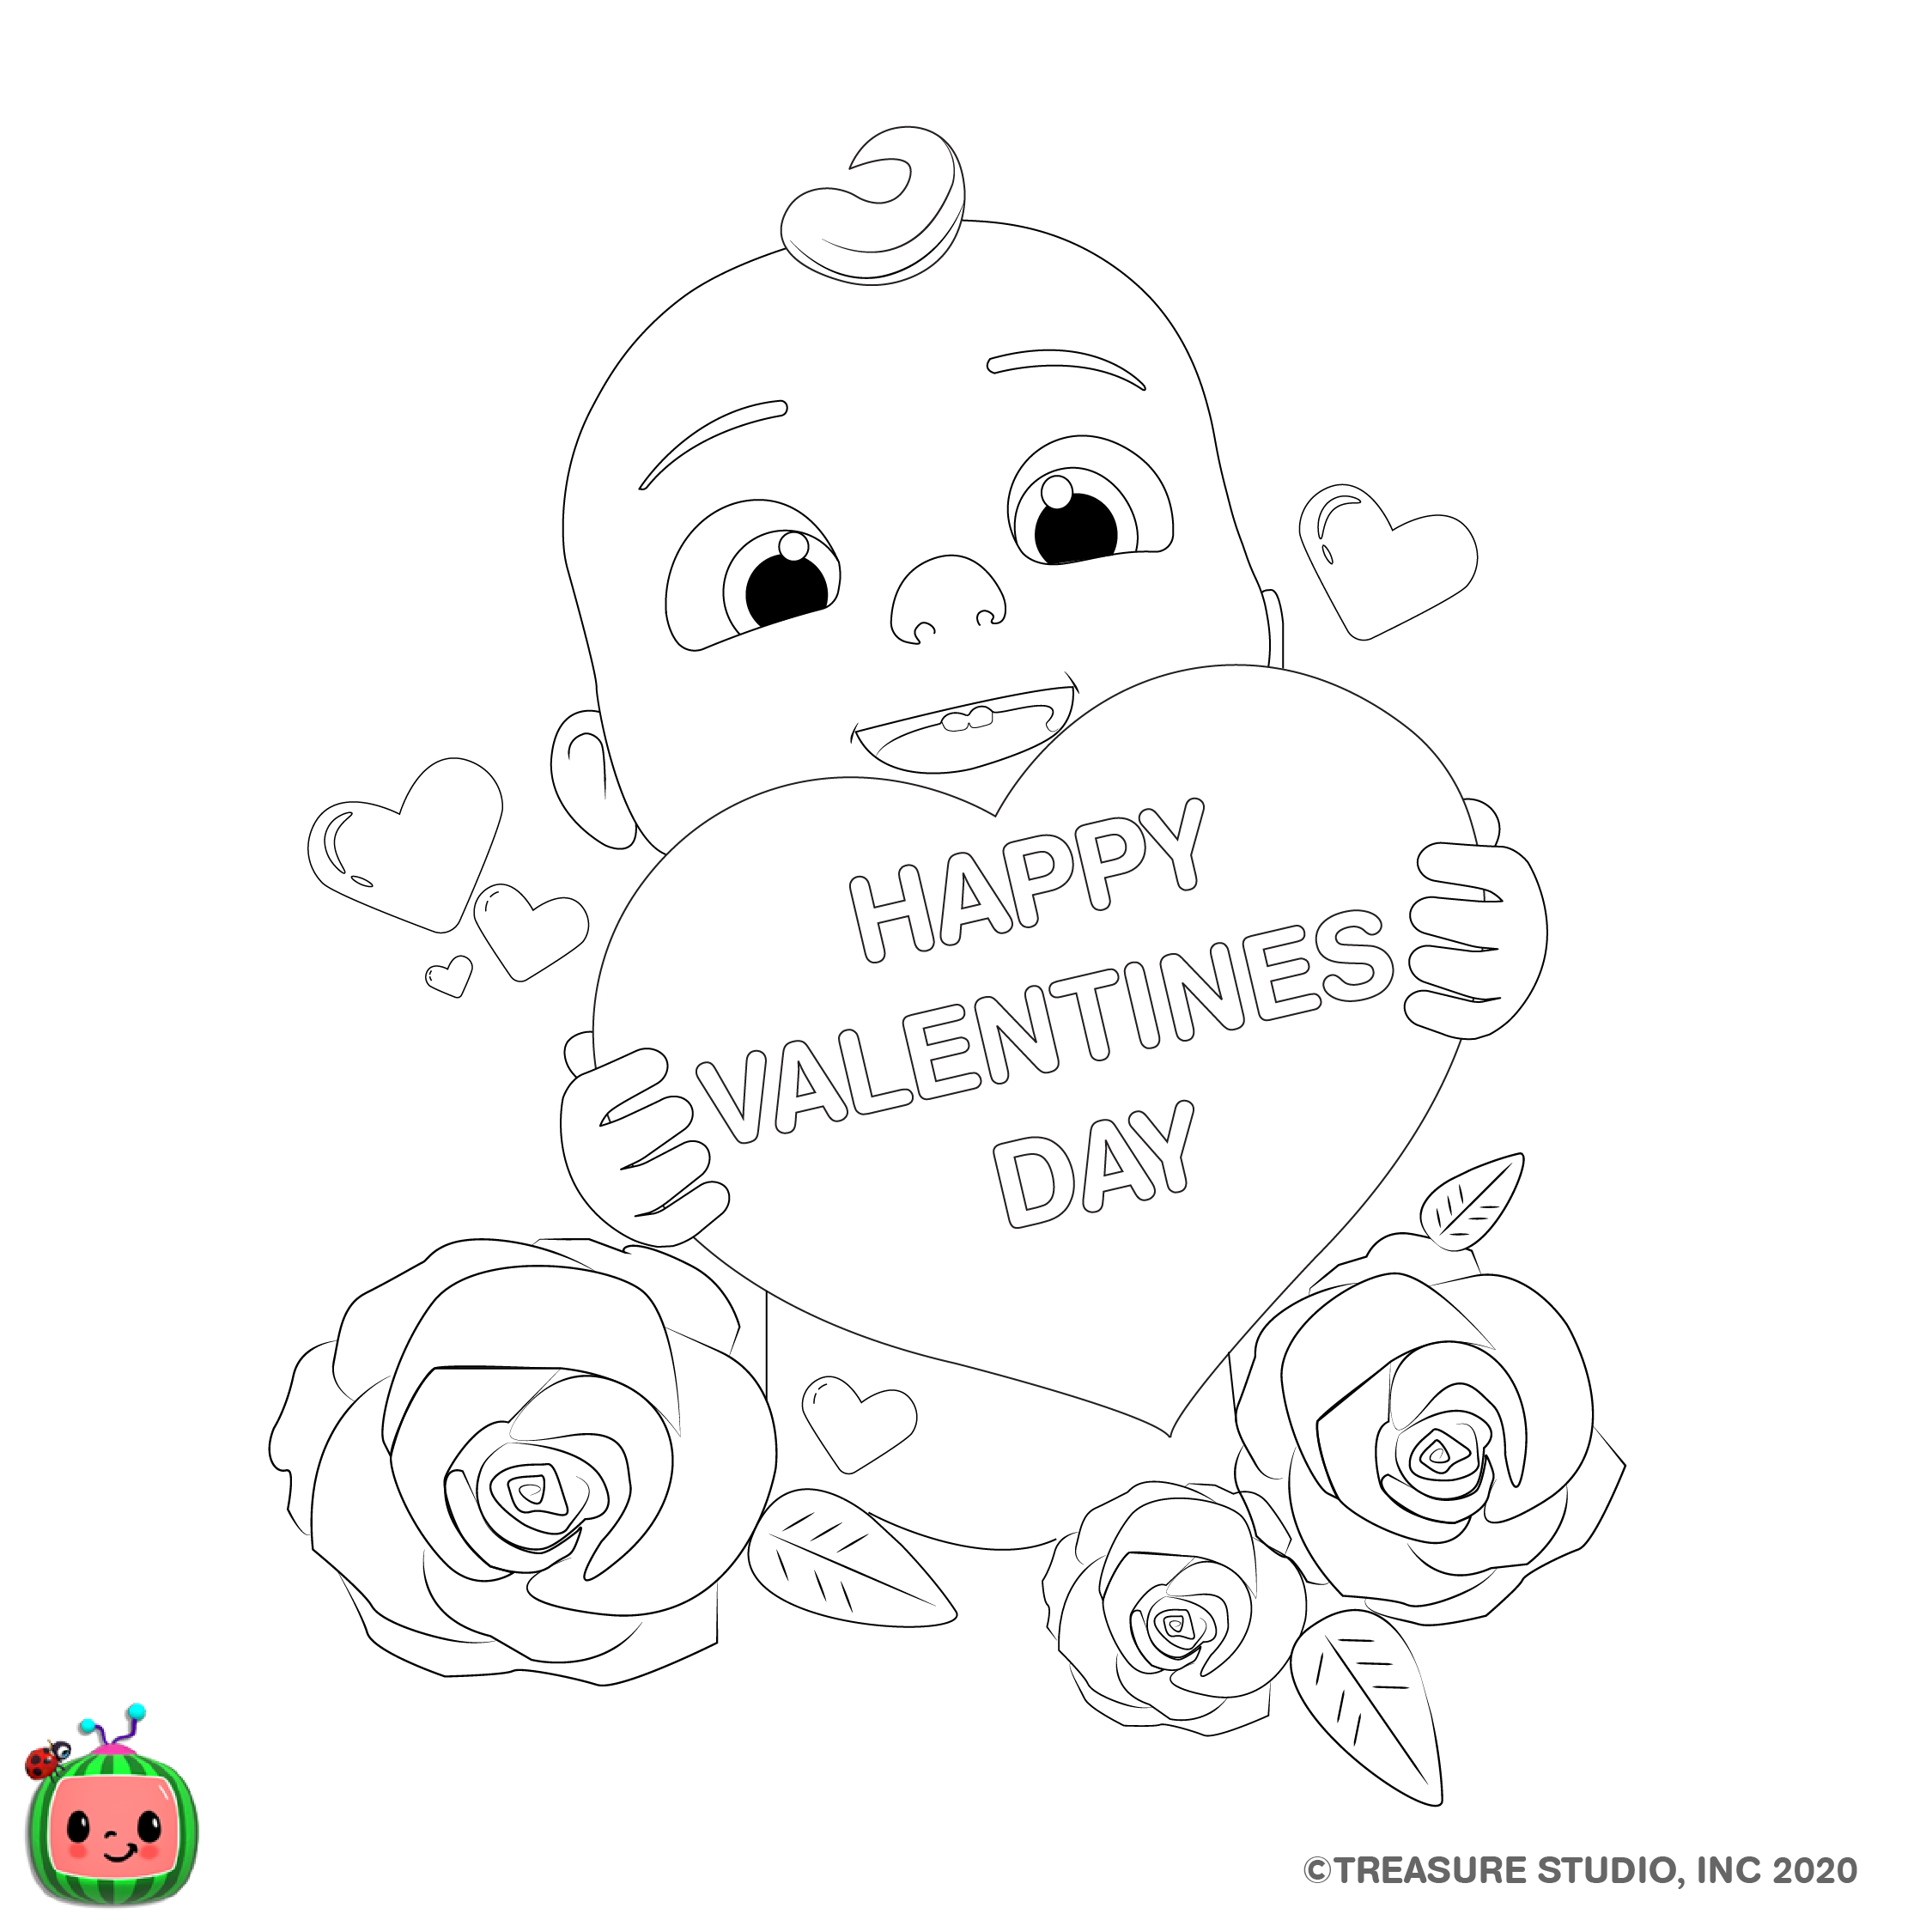 IGColoringPage_ValentinesDay-01.png